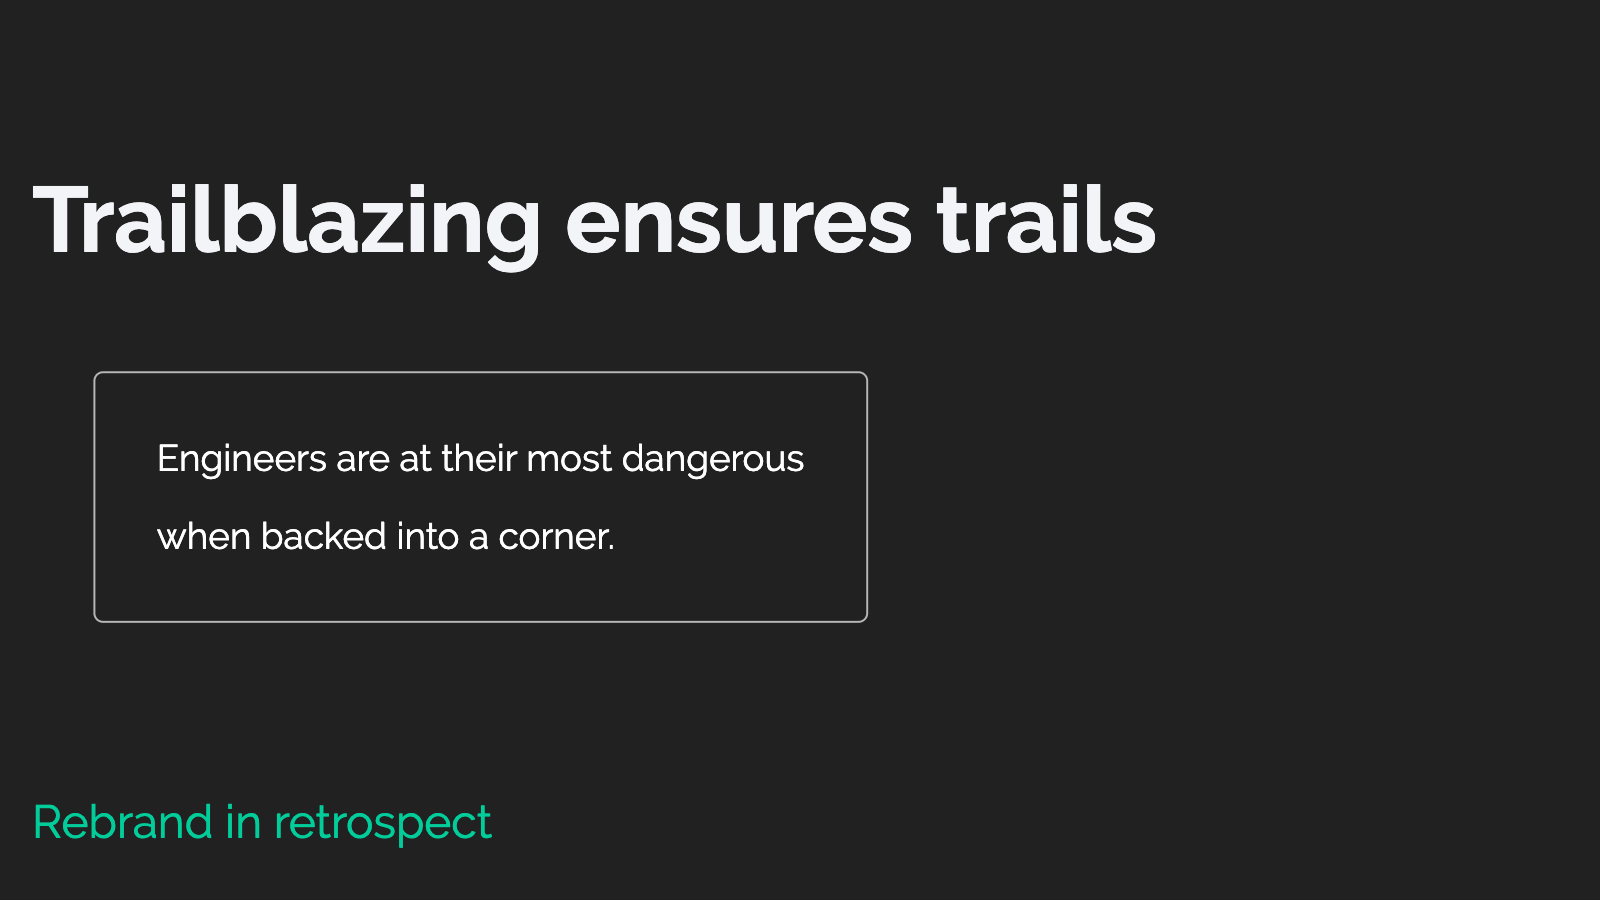 Slide content, Retrospective: Trailblazing ensures trails. Engineers are at their most dangerous when backed into a corner.